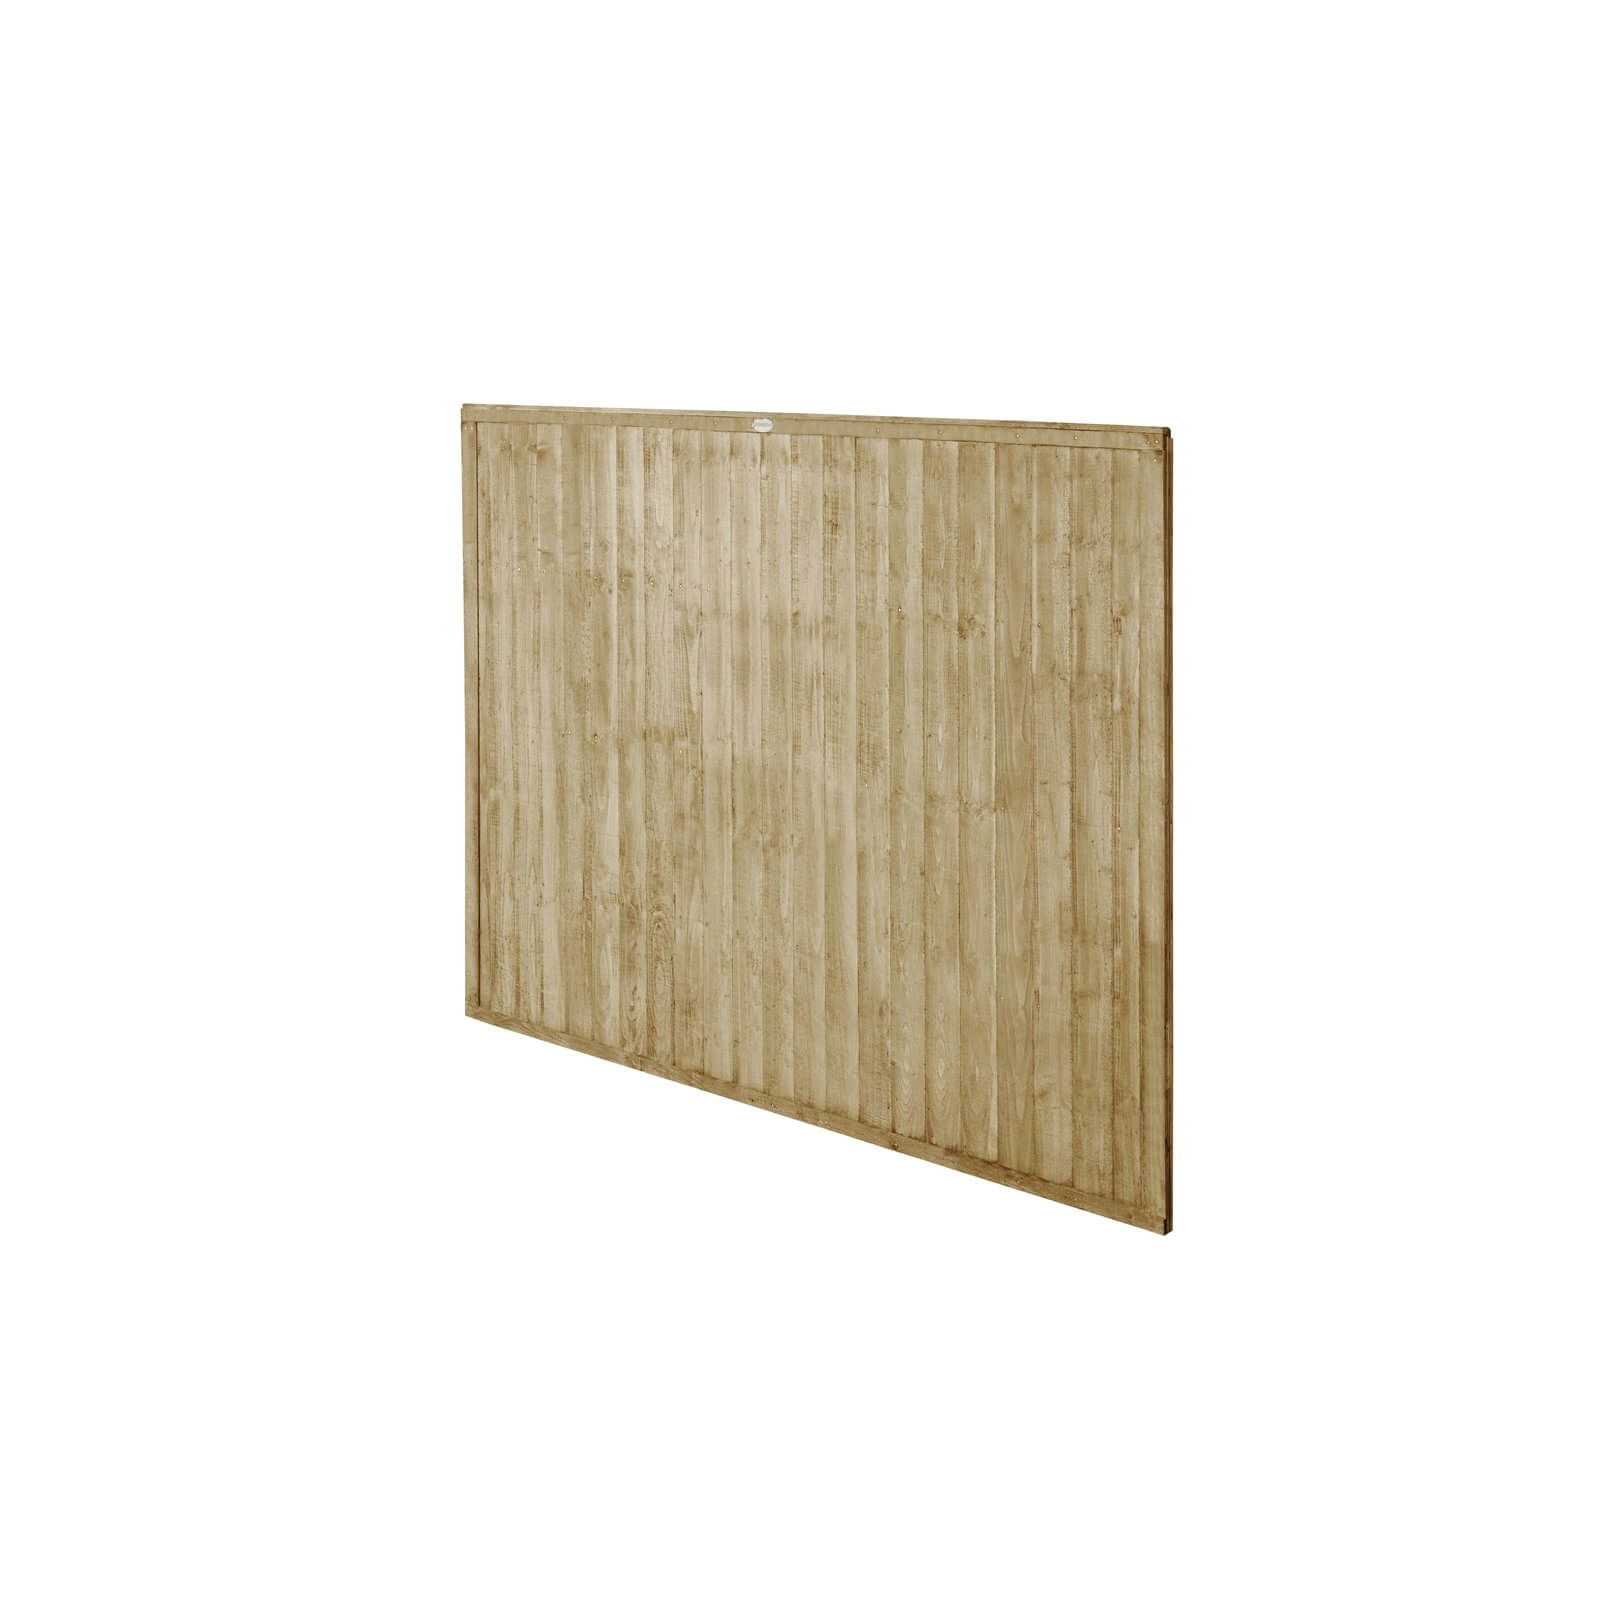 6ft x 5ft (1.83m x 1.52m) Pressure Treated Closeboard Fence Panel - Pack of 5